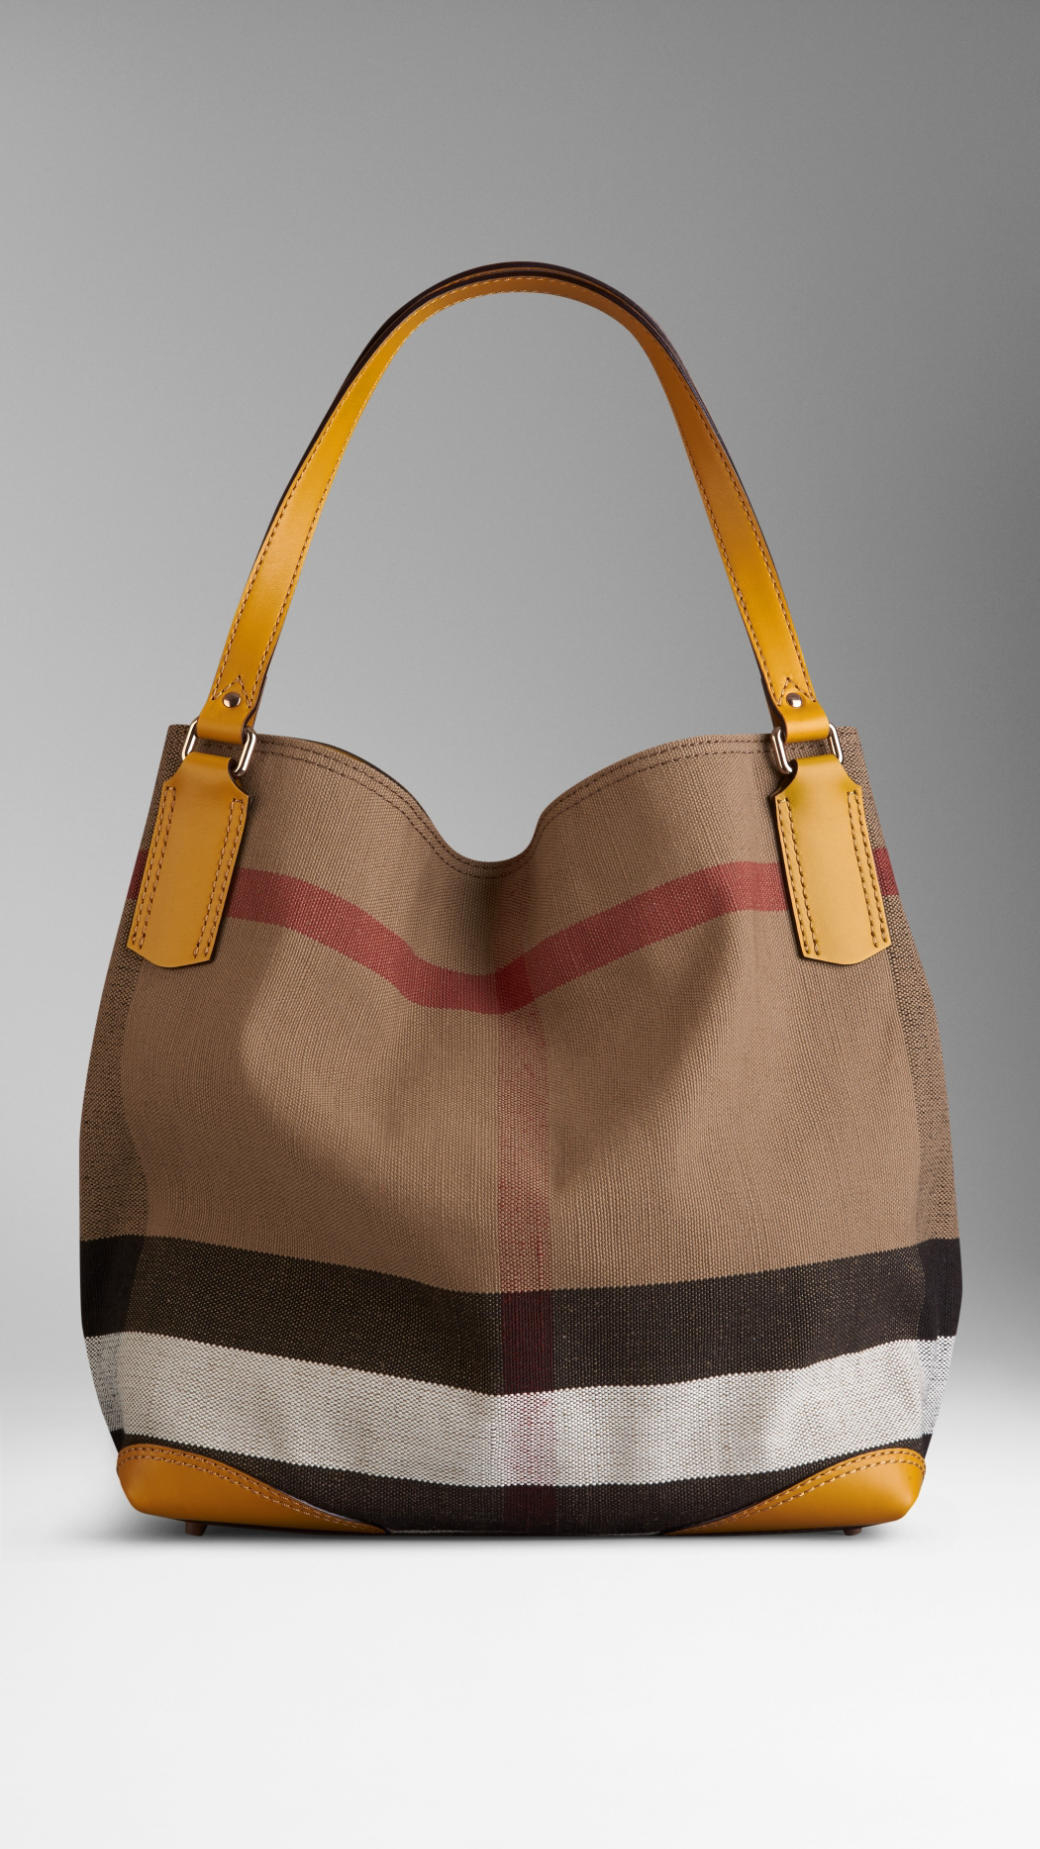 Burberry Medium Canvas Check Tote Bag in Yellow | Lyst